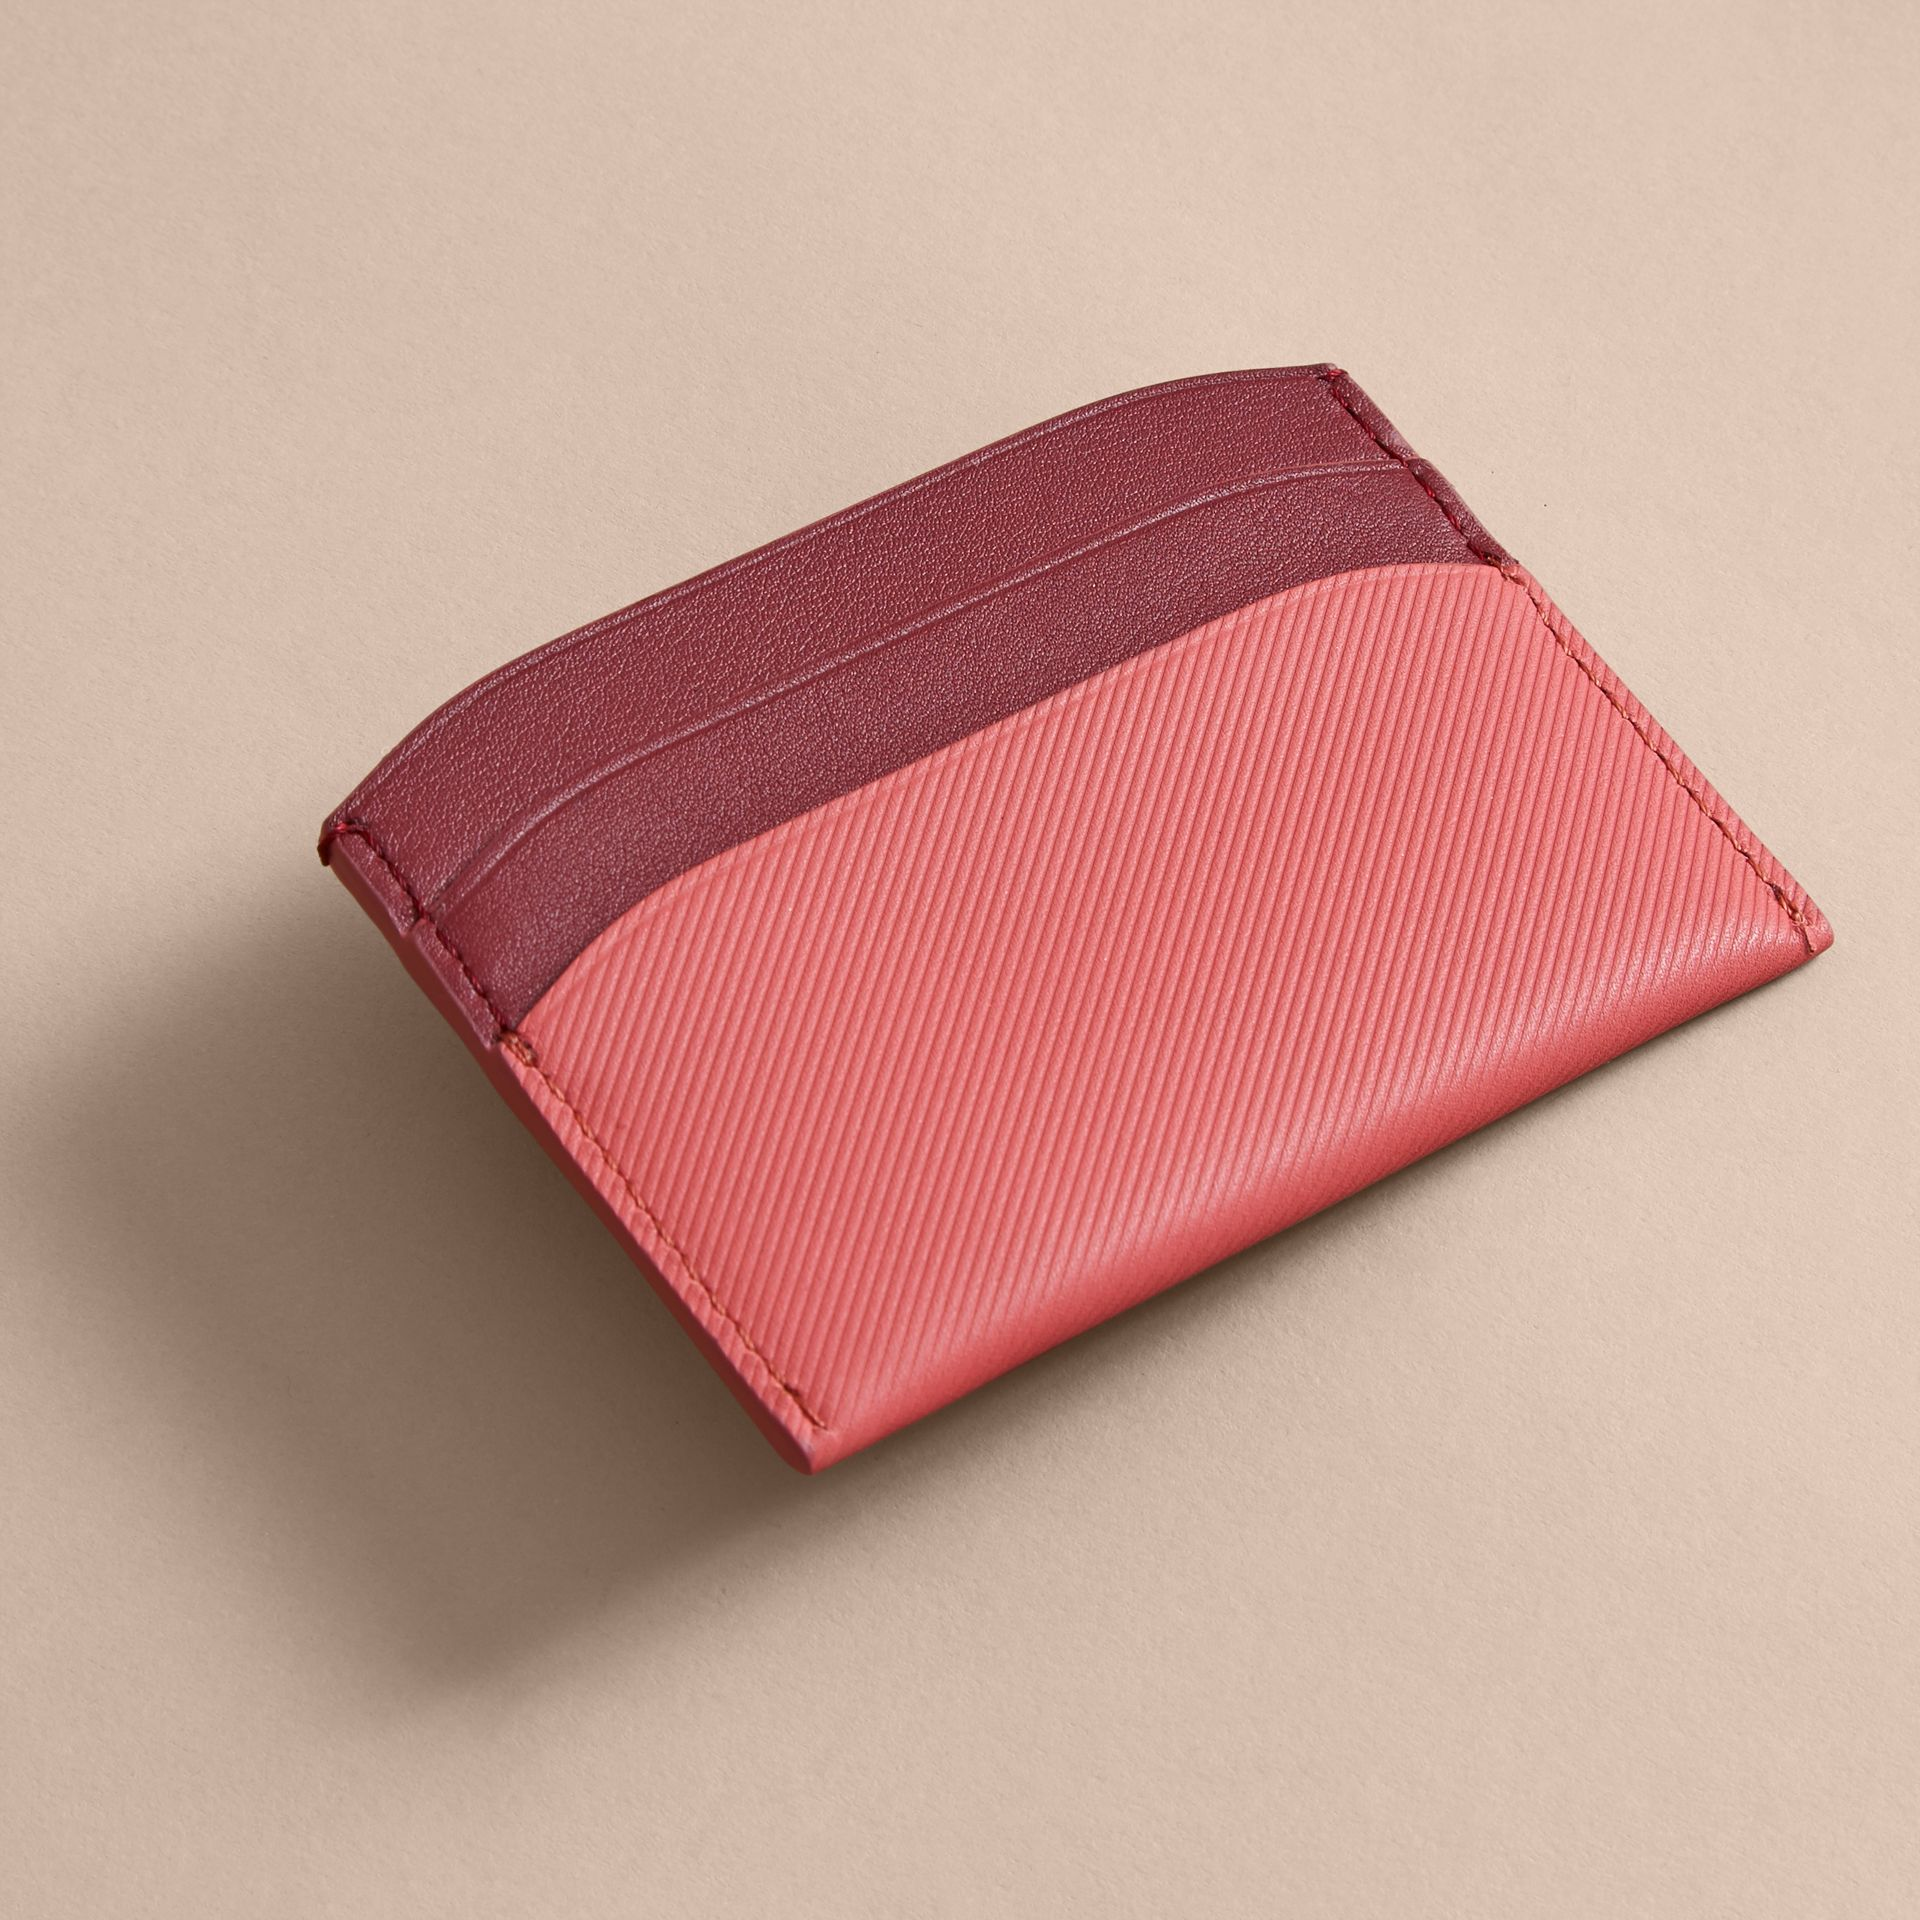 Two-tone Trench Leather Card Case in Blossom Pink/ Antique Red - Women | Burberry Singapore - gallery image 3